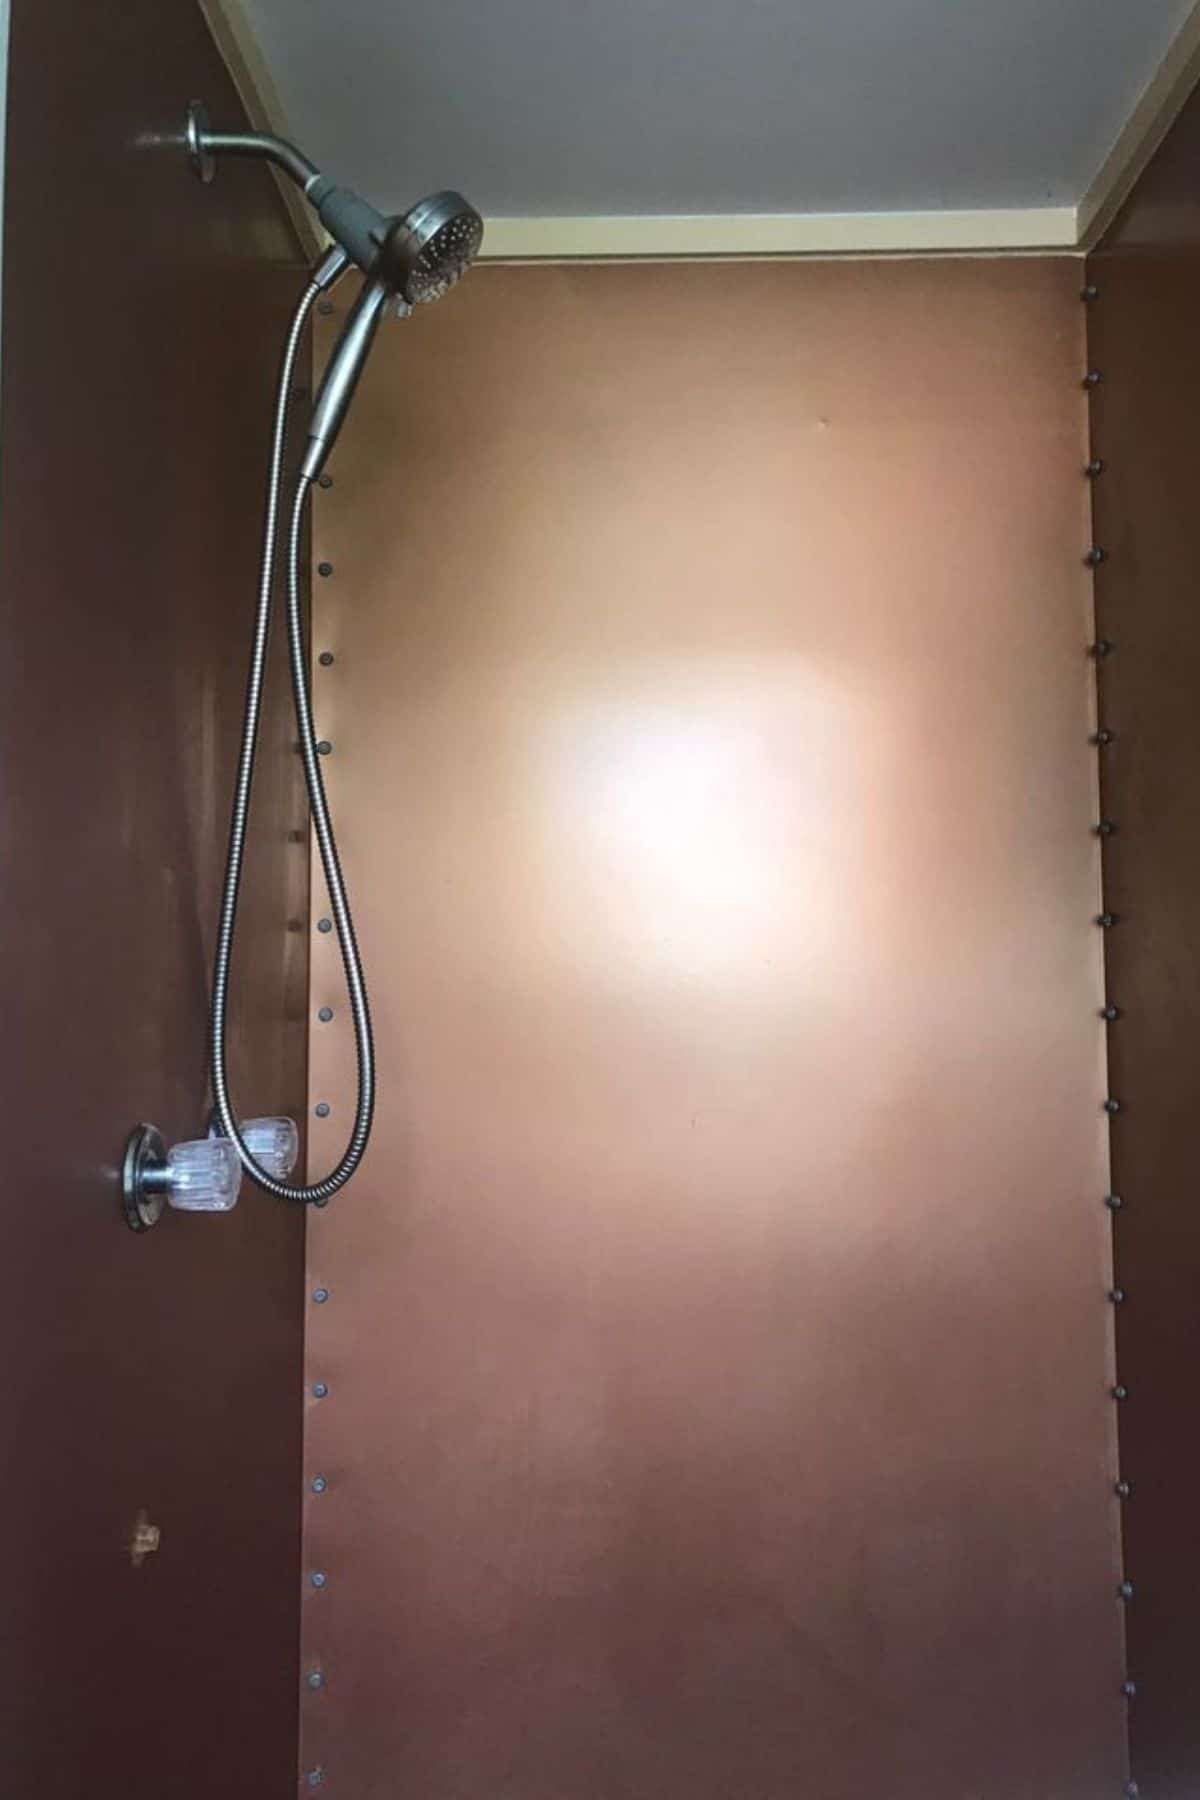 Copper wall in shower with detachable shower head on wall